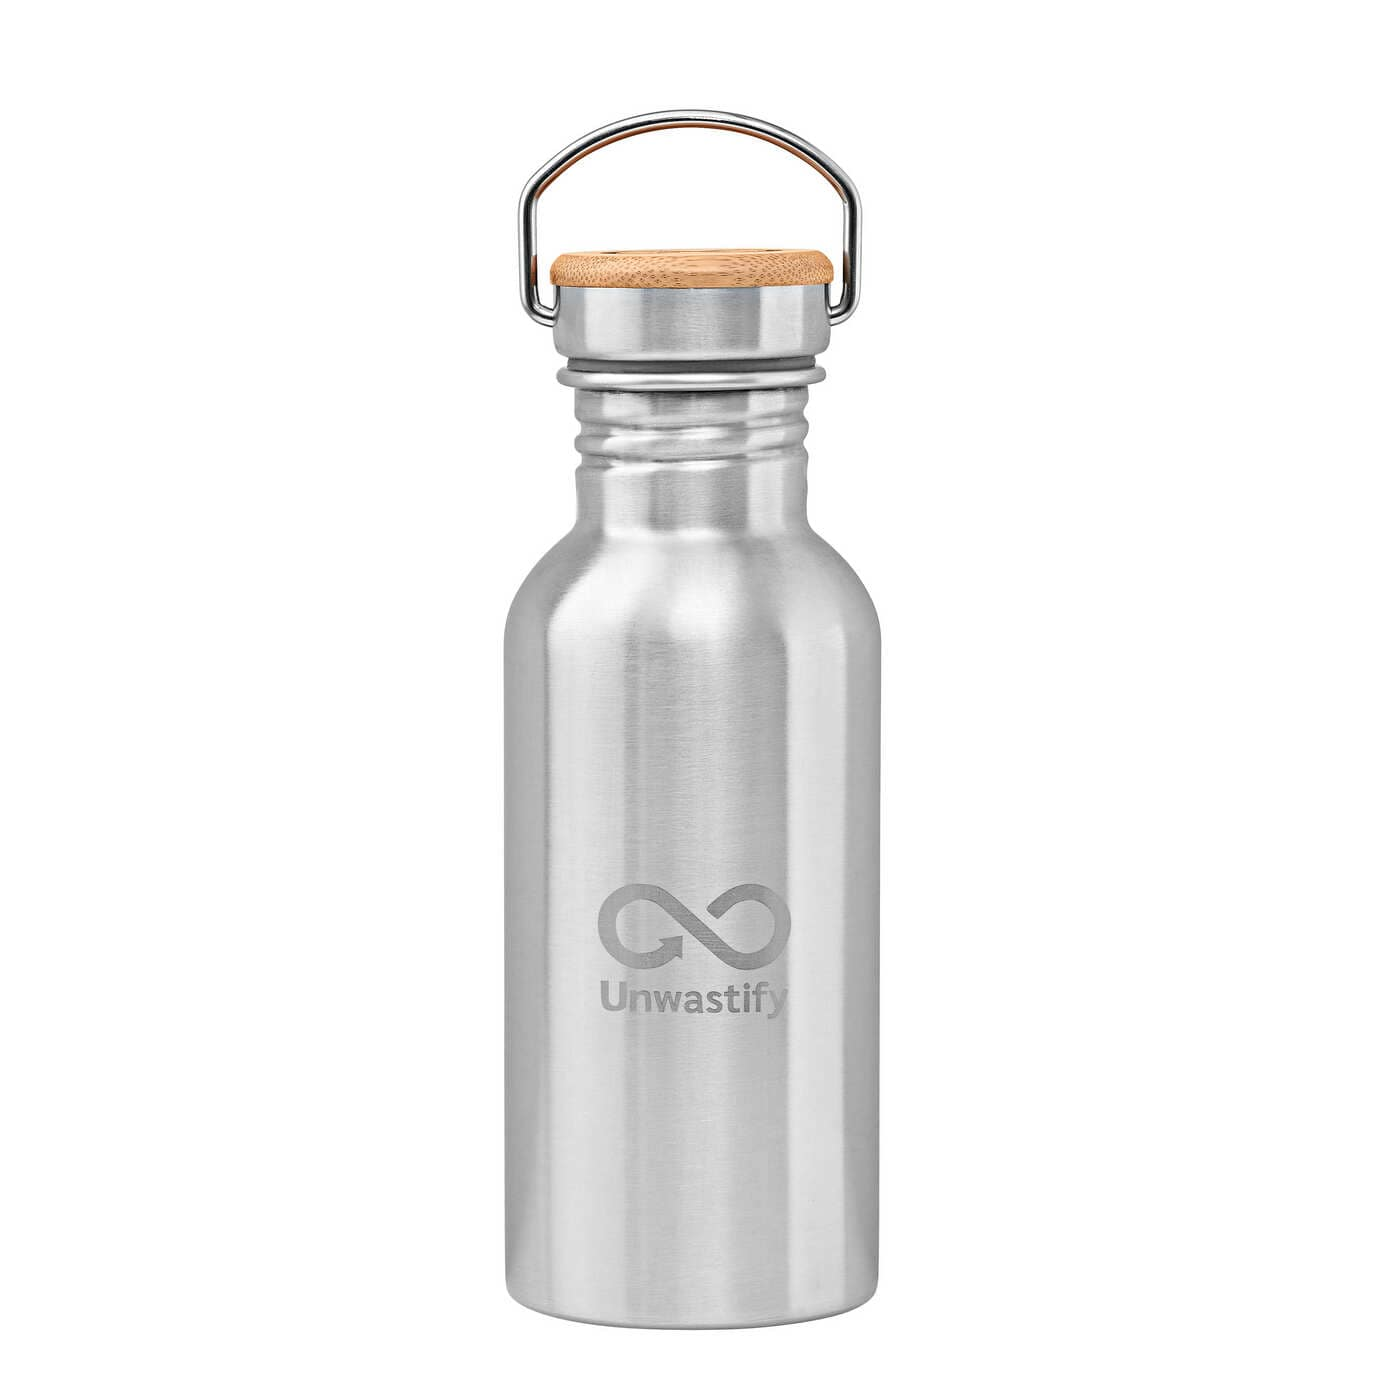 Unwastify stainless steel bottle 500 ml